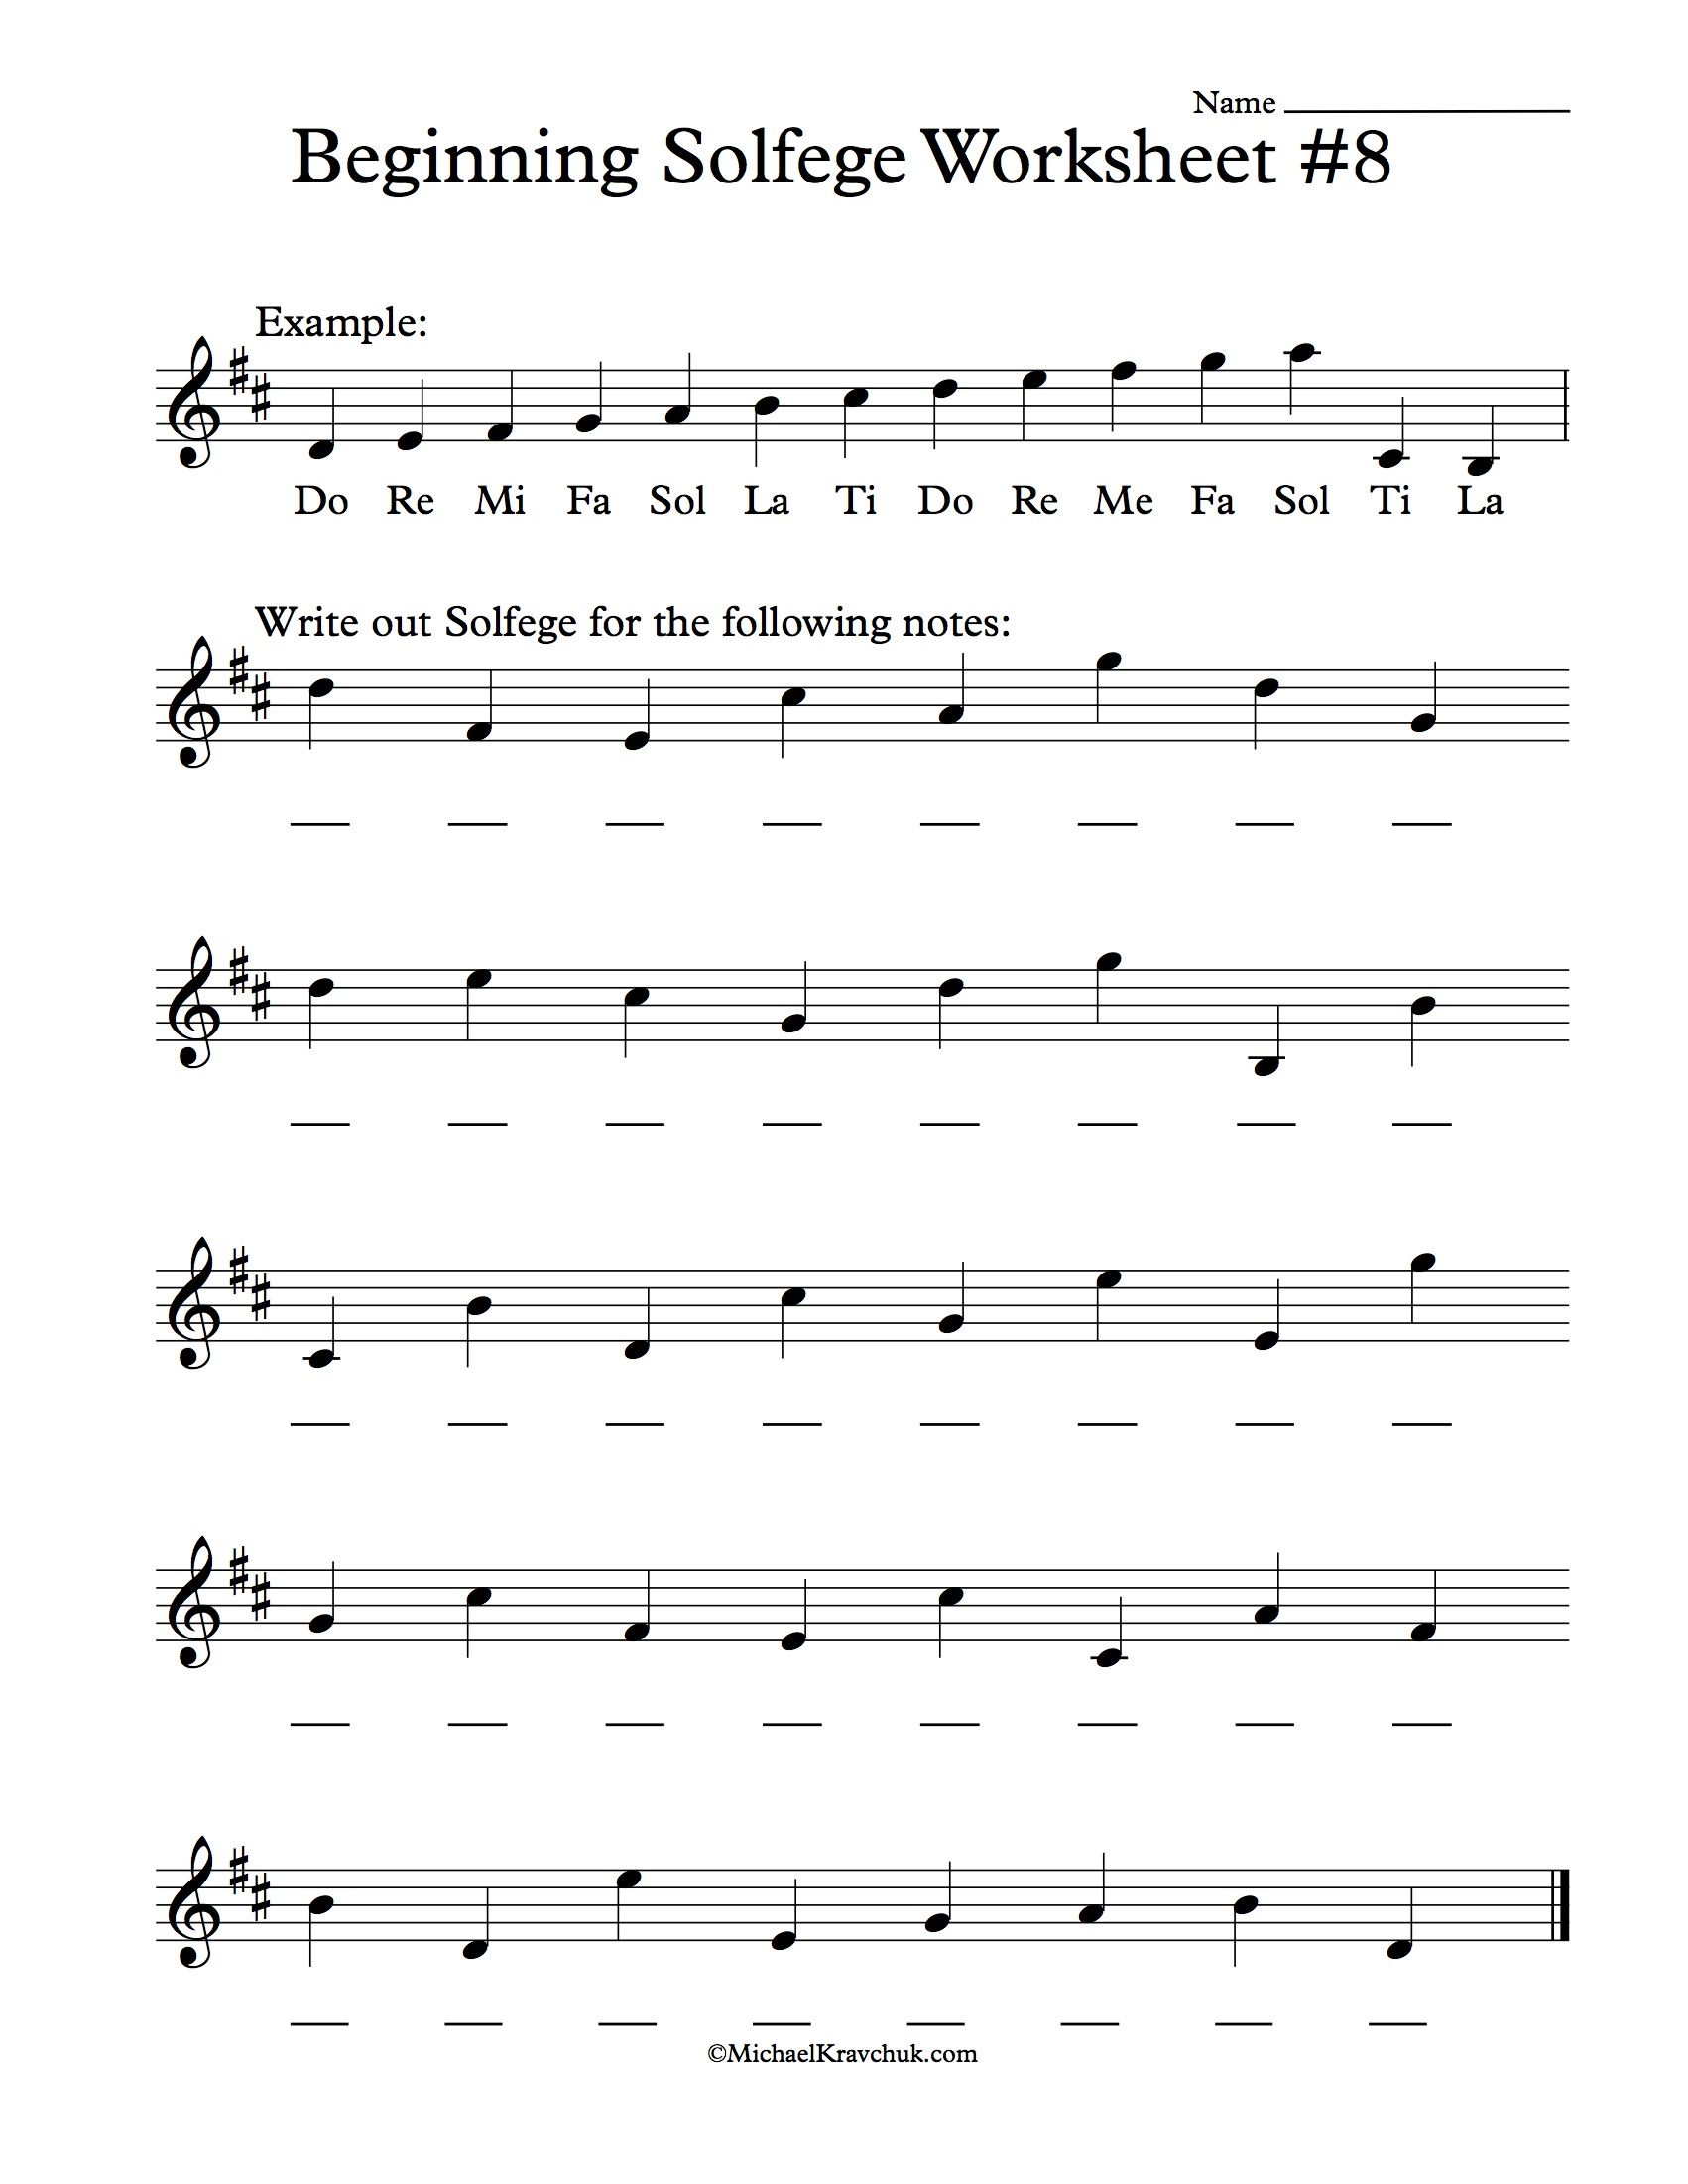 Beginning Solfege Worksheet 8 For Classroom Instructions